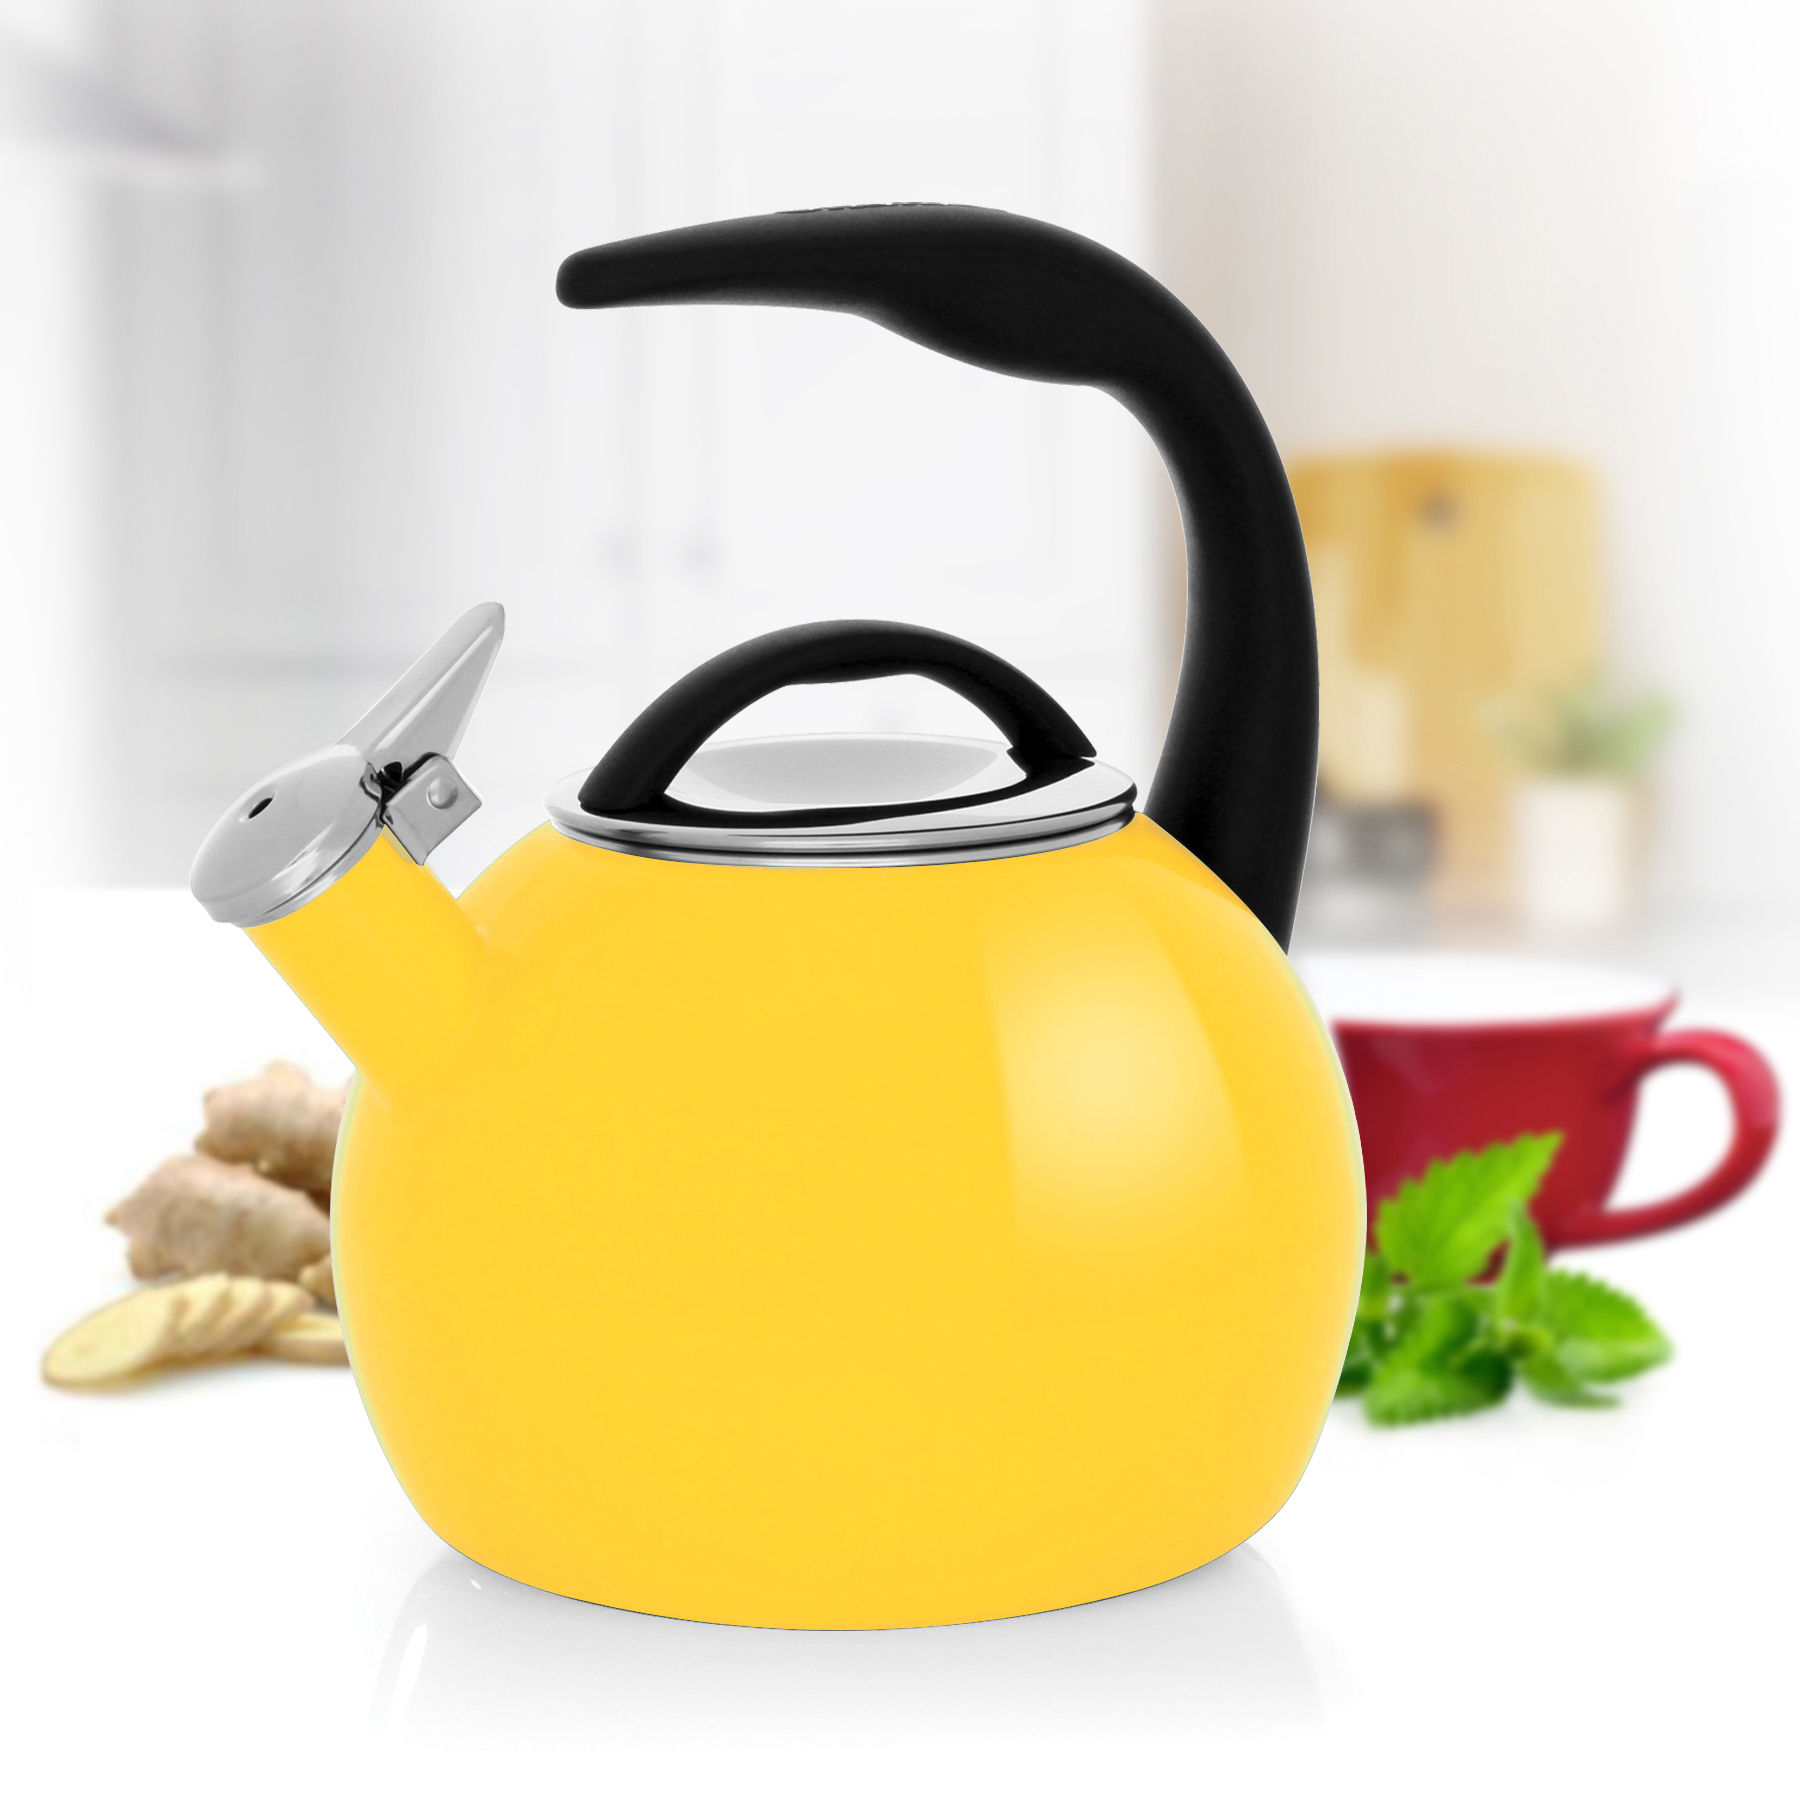 Chantal 2-qt Enamel-on-Steel Anniversary Teakettle